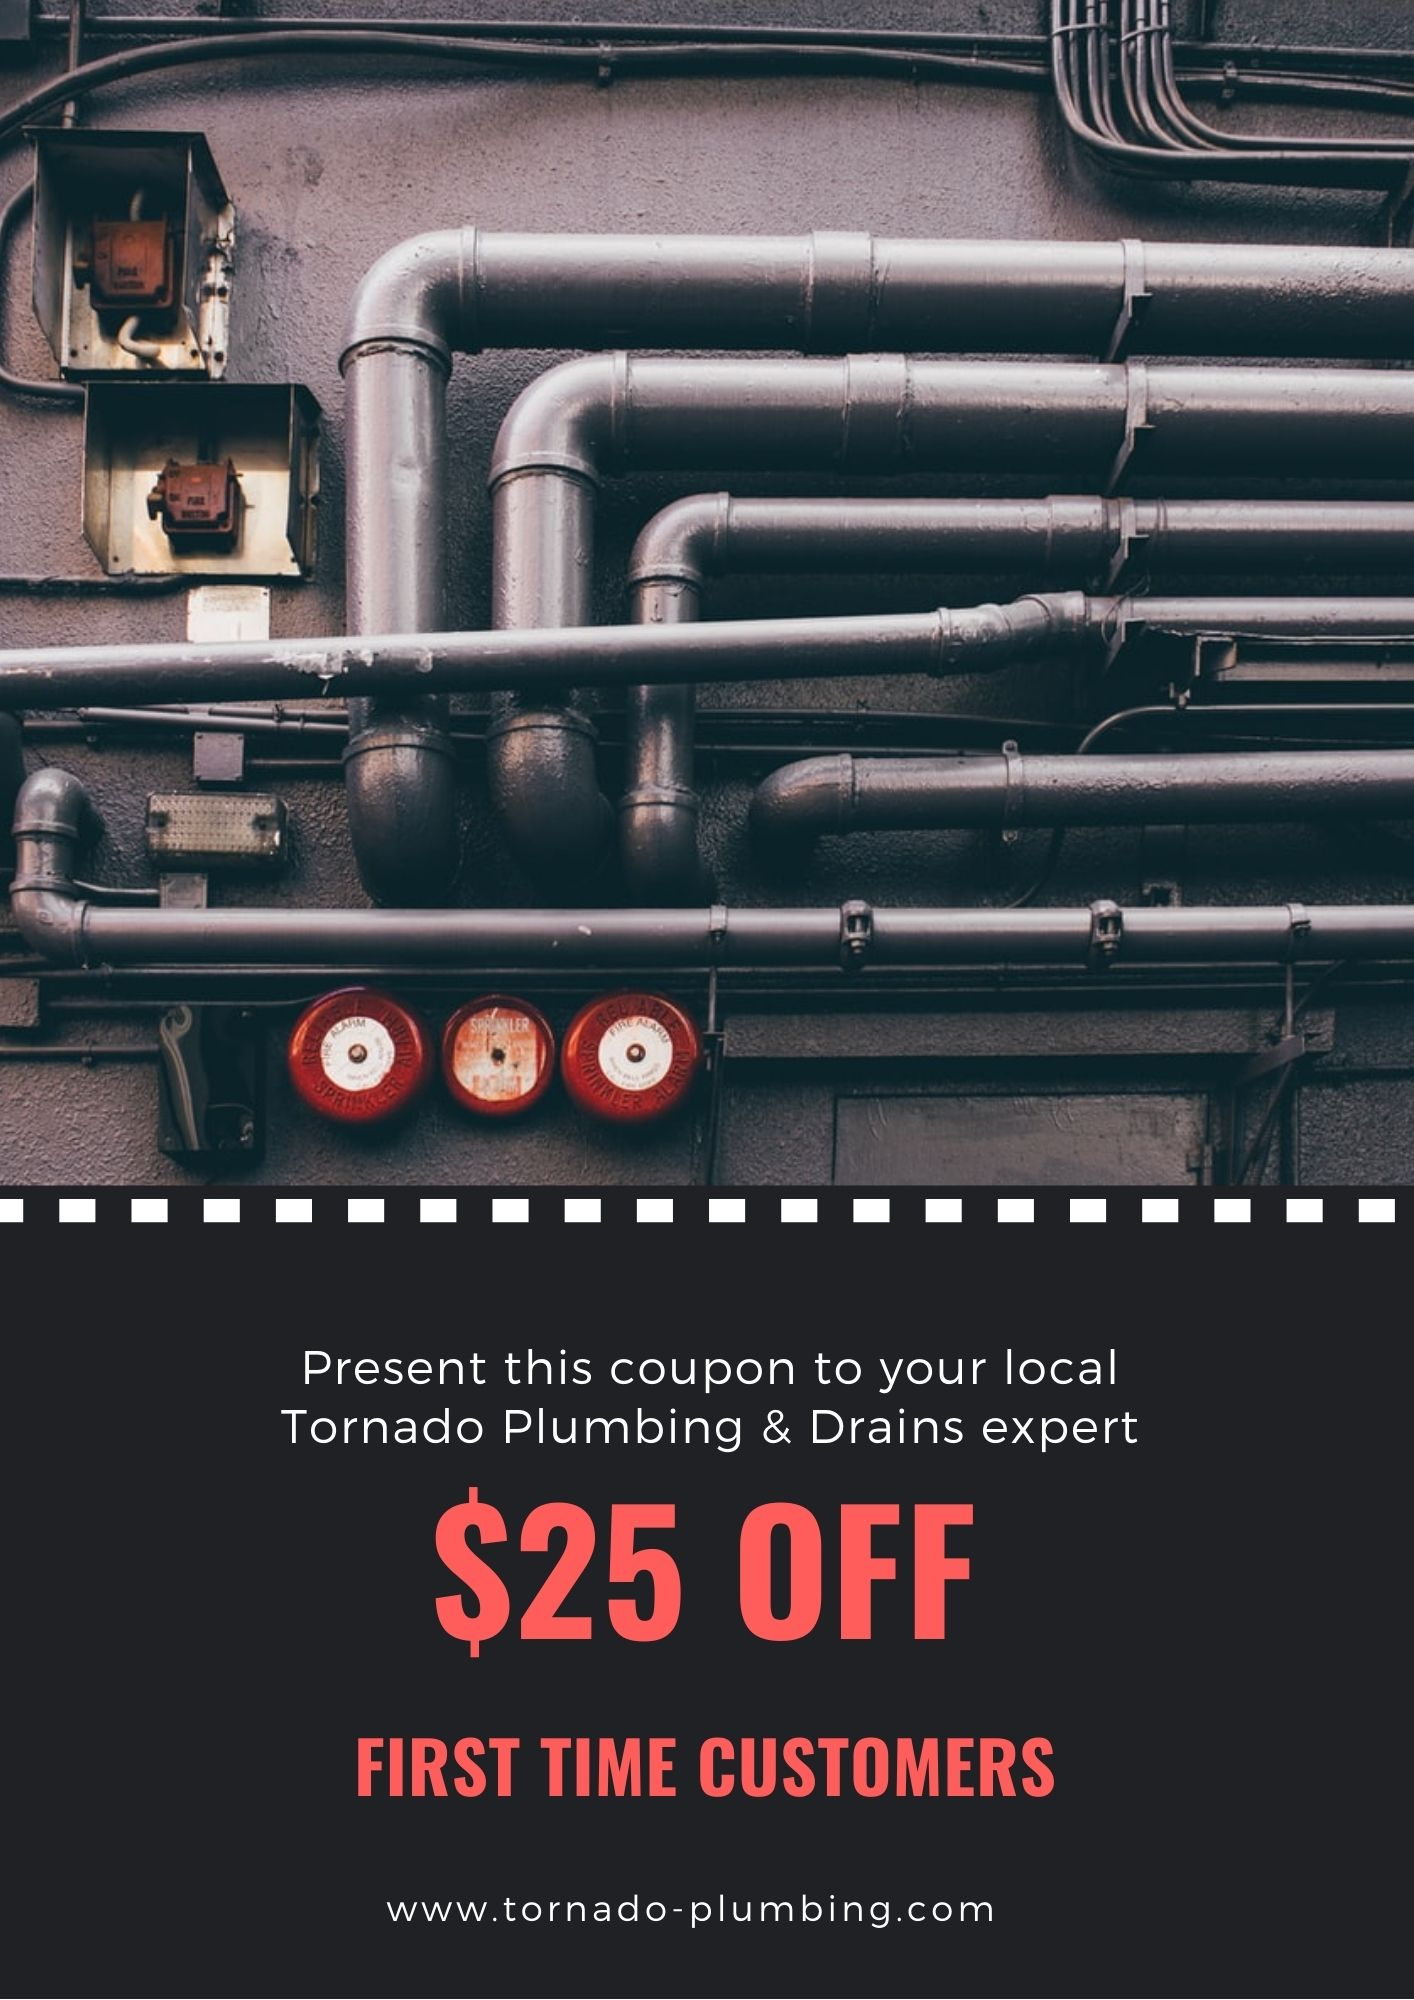 25 OFF First Time Customers Coupons Online Canada Tornado Plumbing & Drains